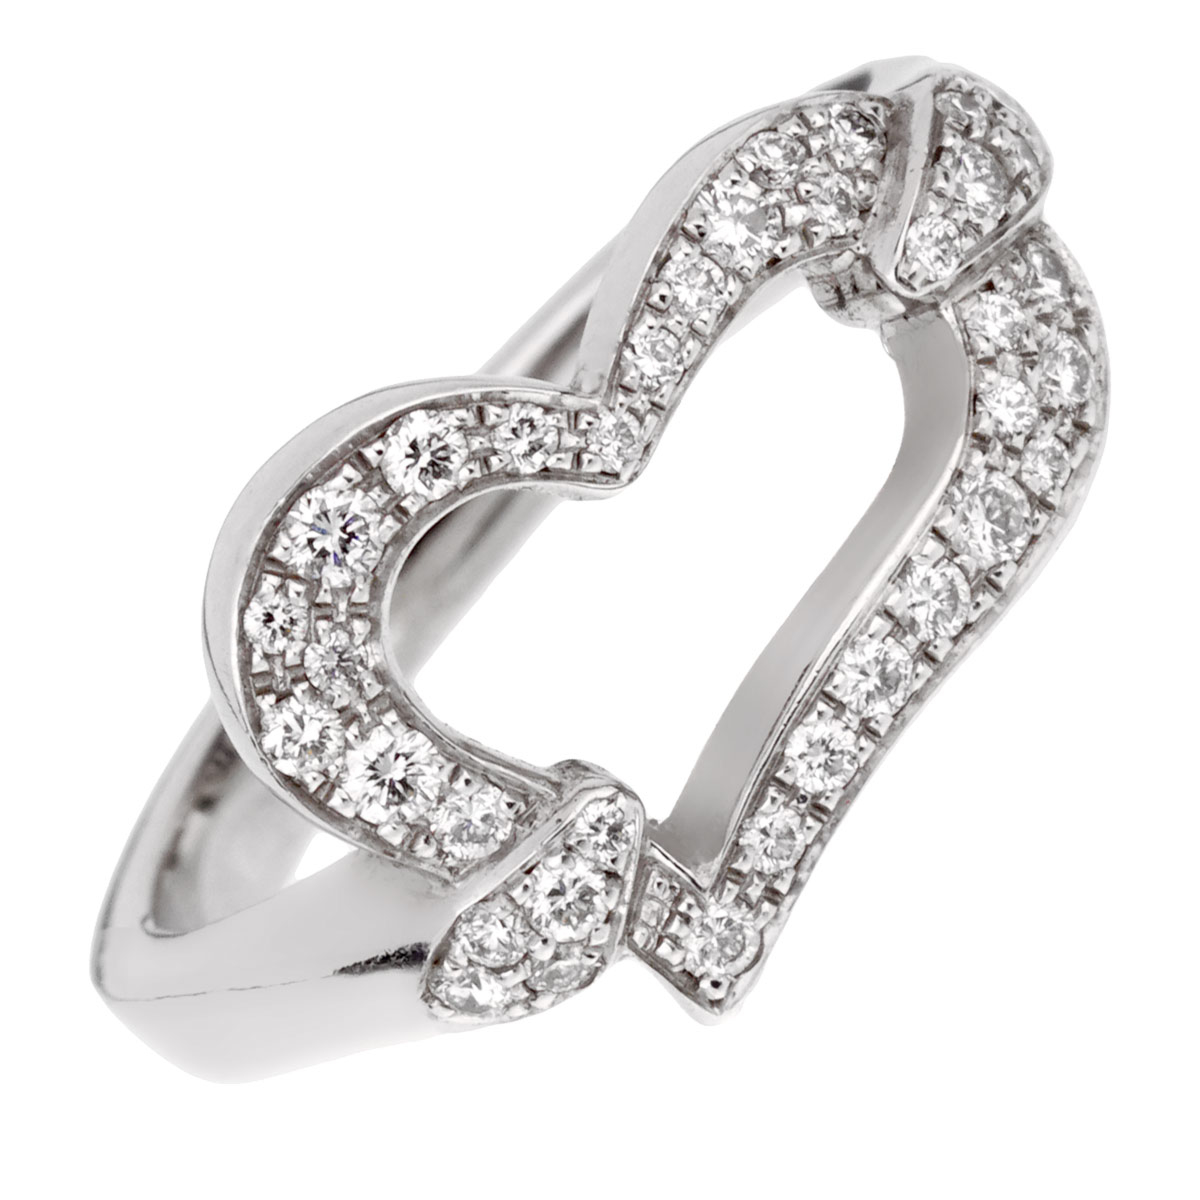 Piaget Heart Diamond White Gold Ring - Piaget Jewelry